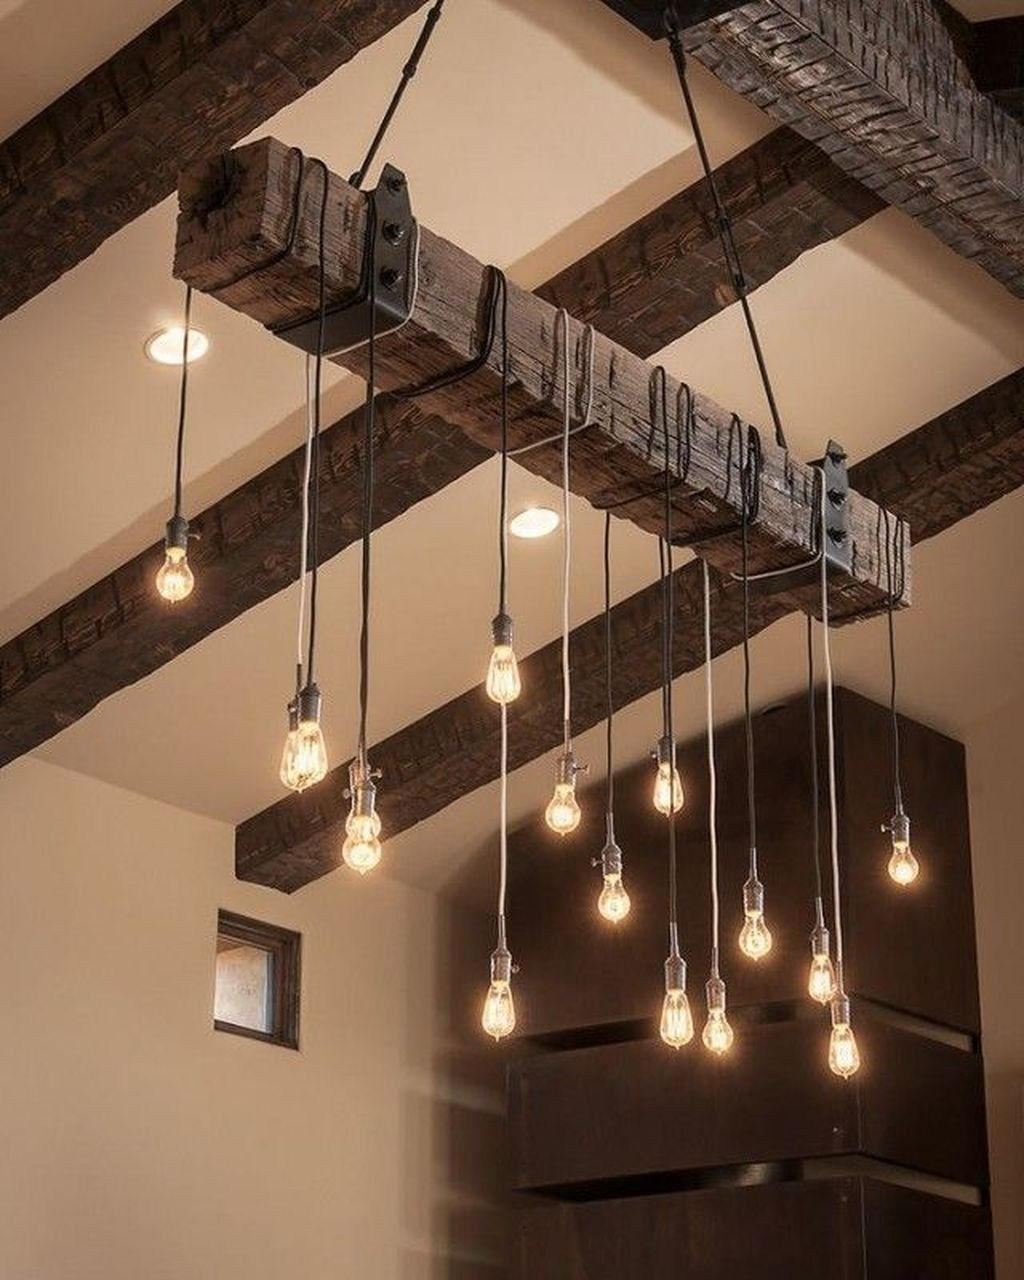 50 Best Creative Diy Hanging Light Fixture Ideas For Your Home Bancroft News Rustic Light Fixtures Rustic Kitchen Lighting Rustic Lighting